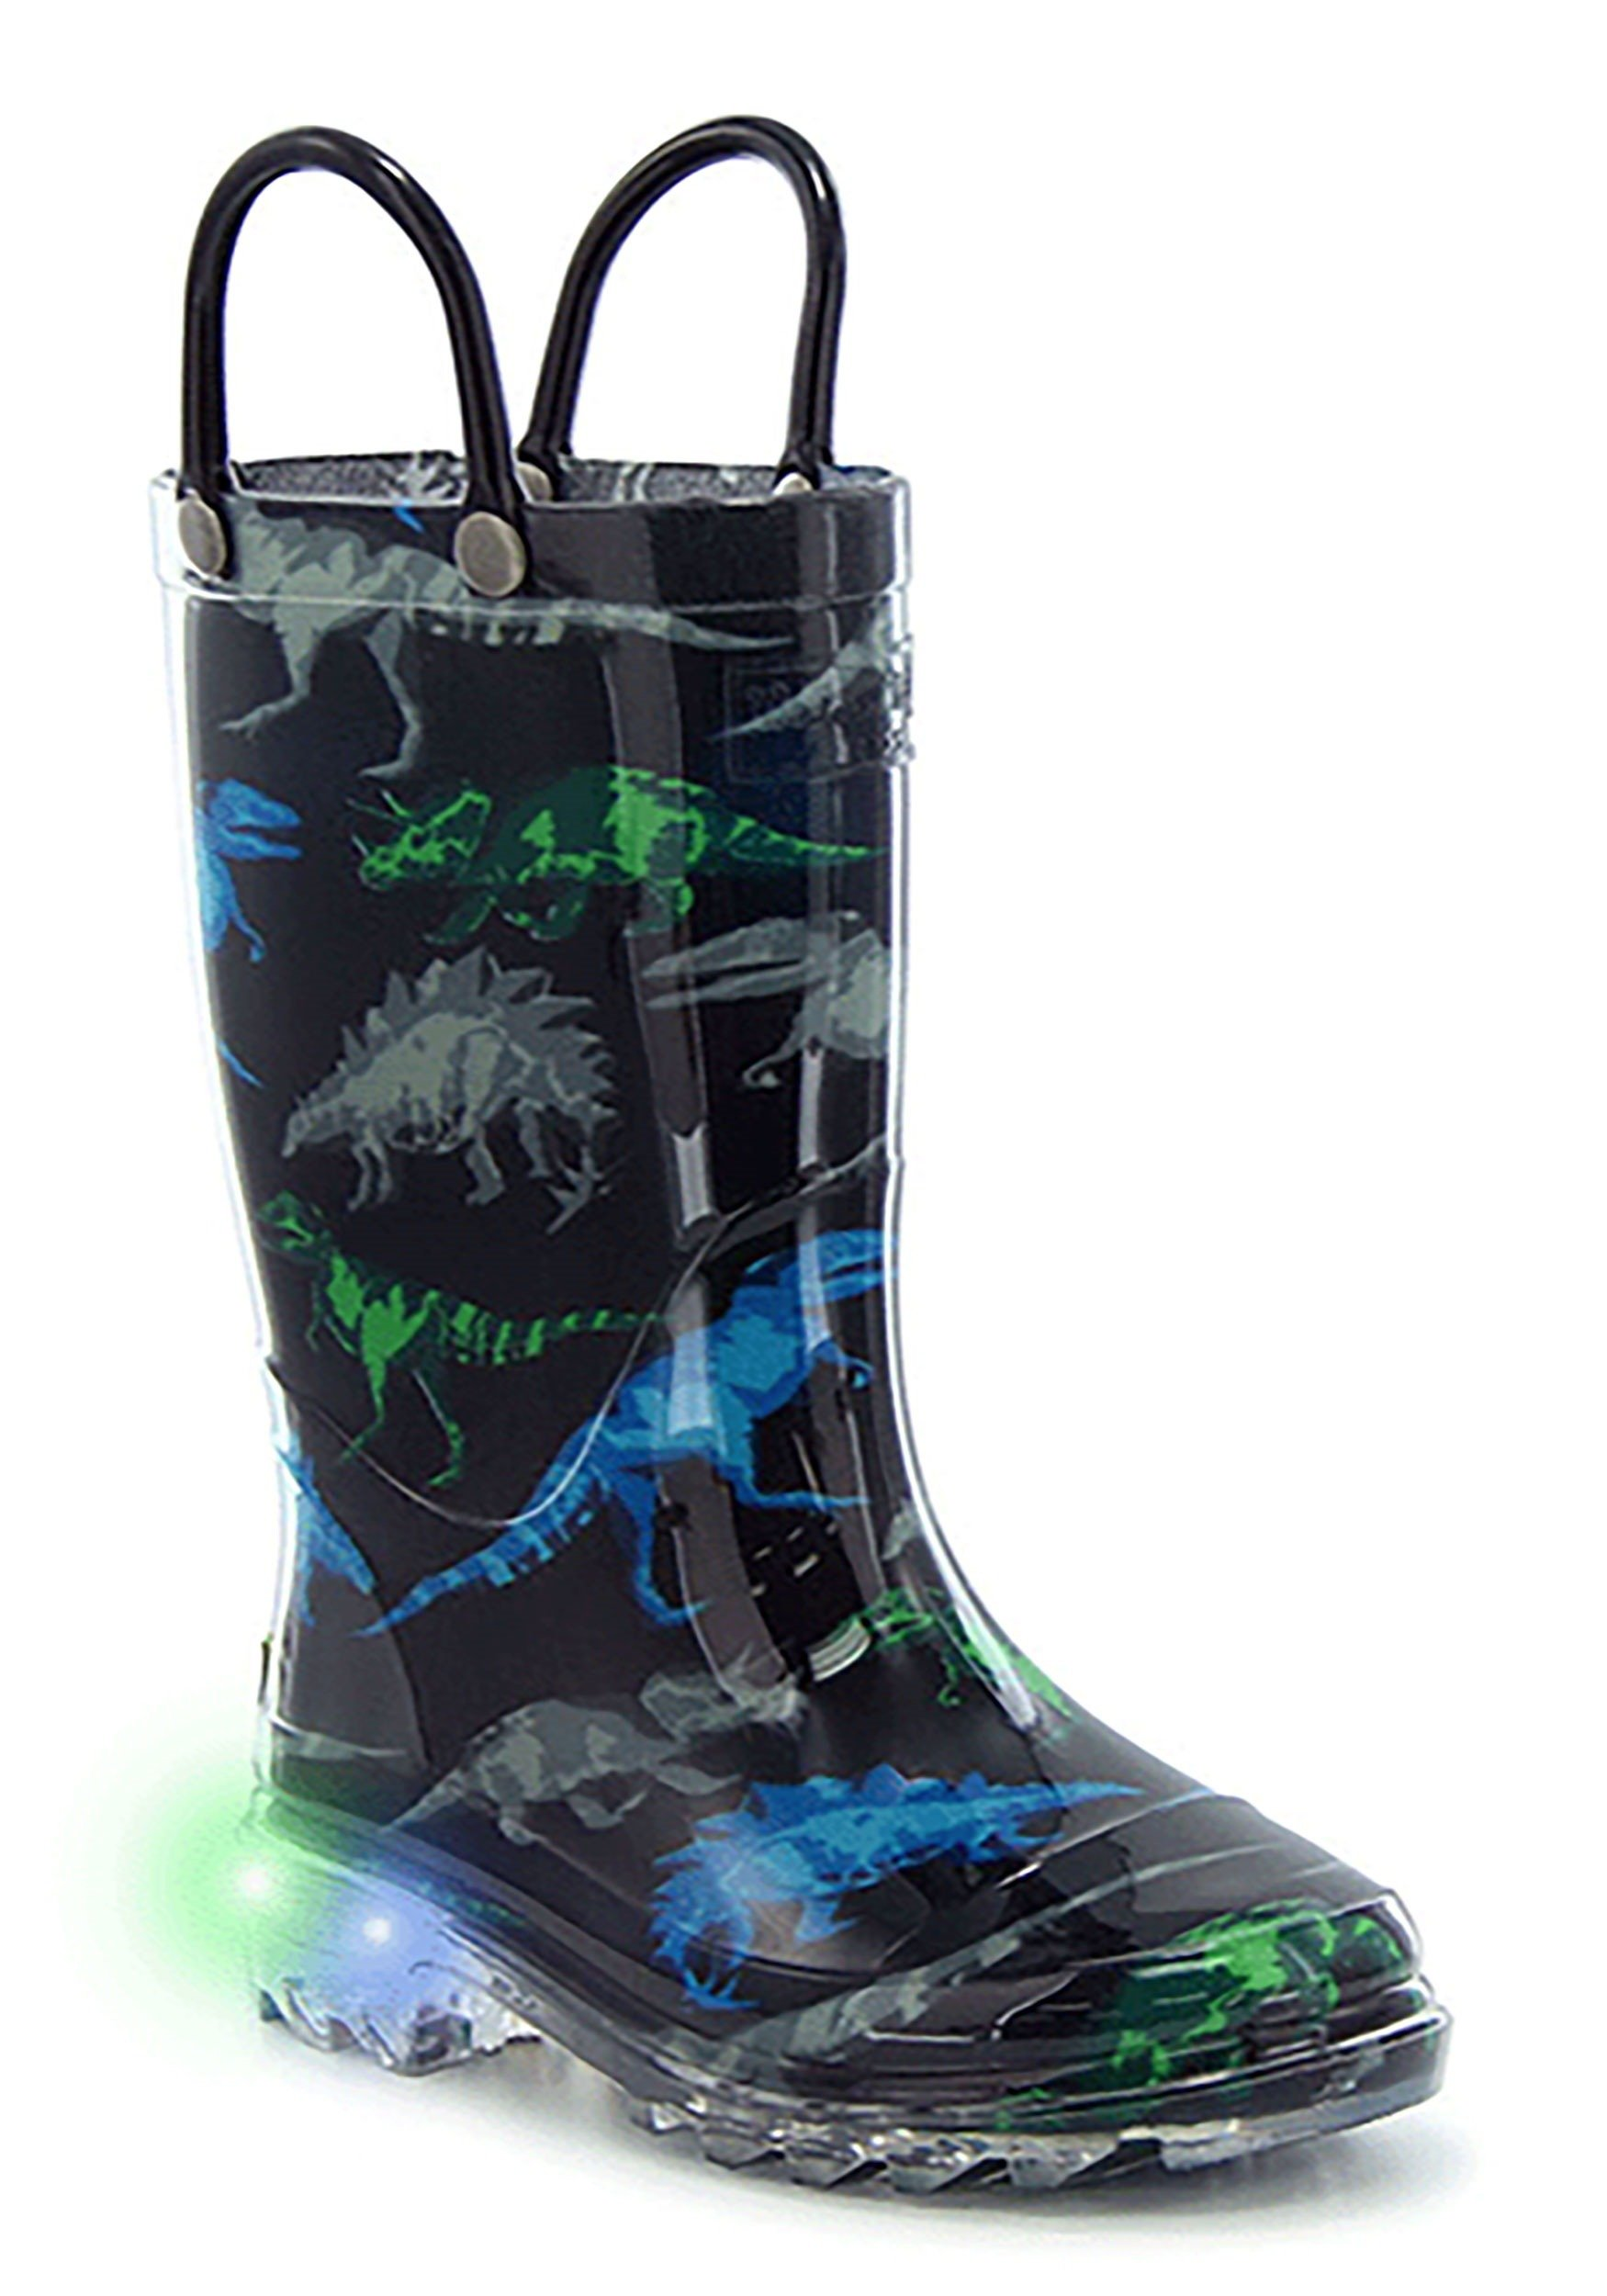 Western Chief Boys' Light-up Waterproof Rain Boot, Dinosaur Friends, 10 M US Toddler